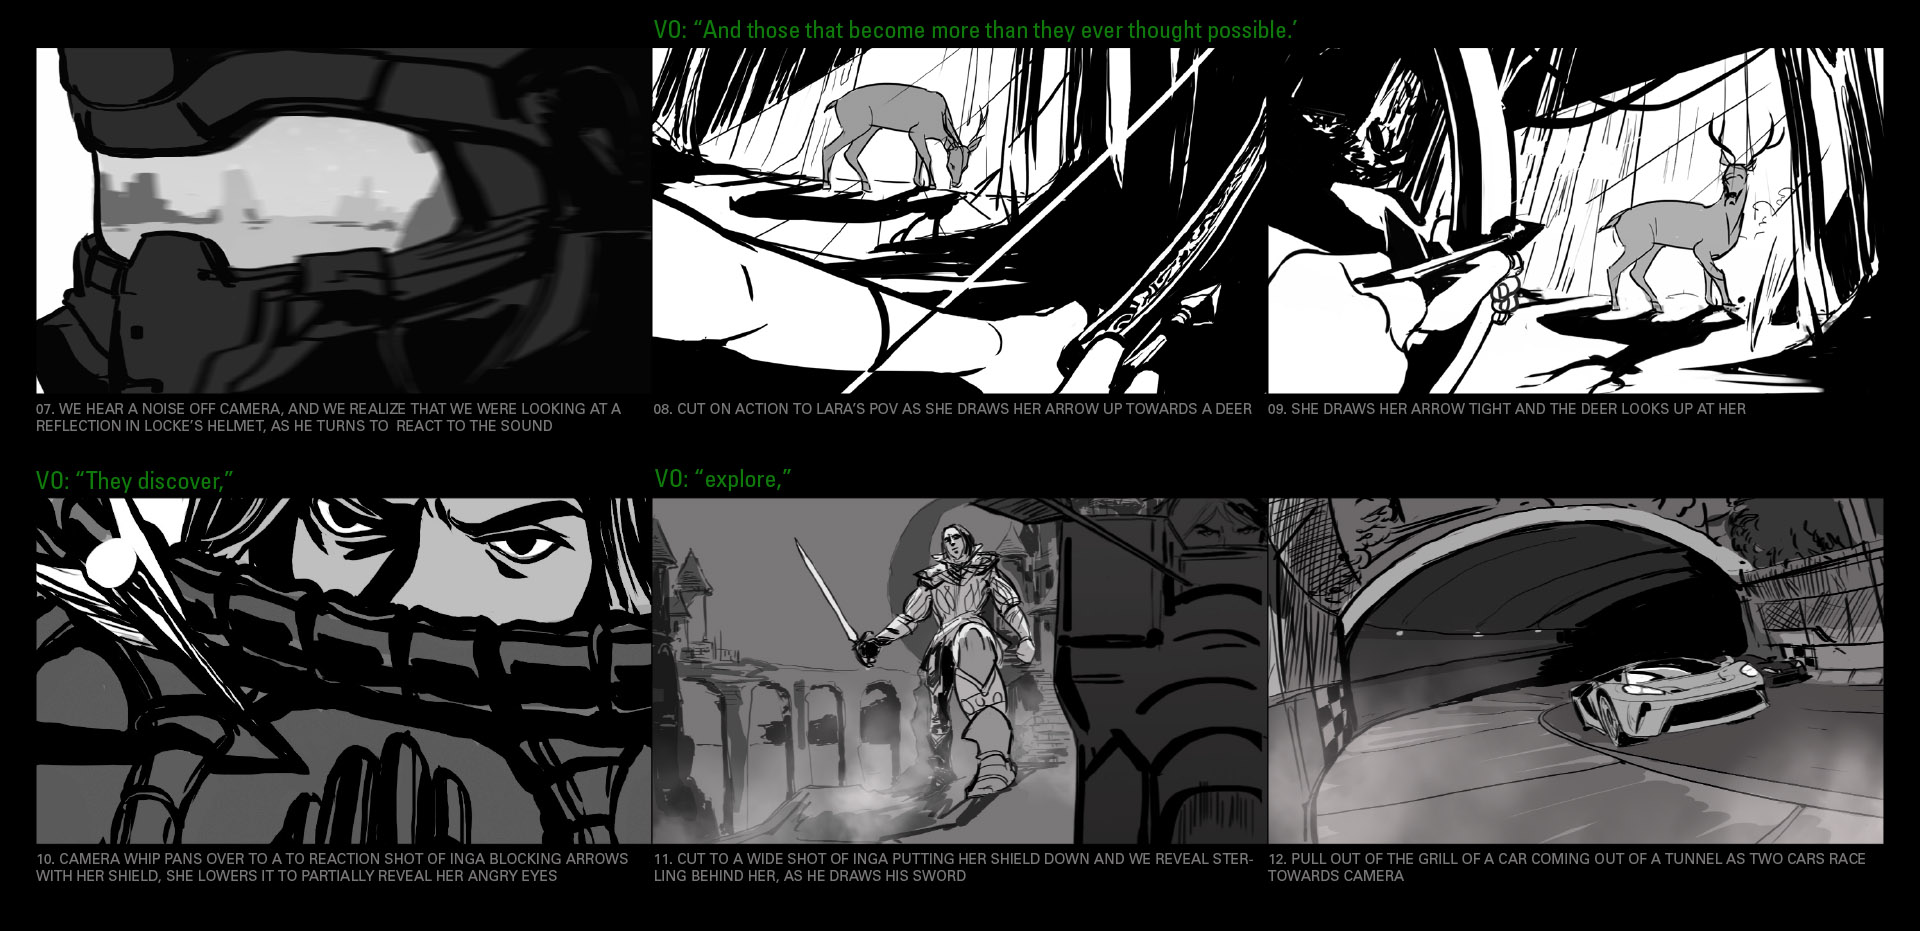 Storyboards_002